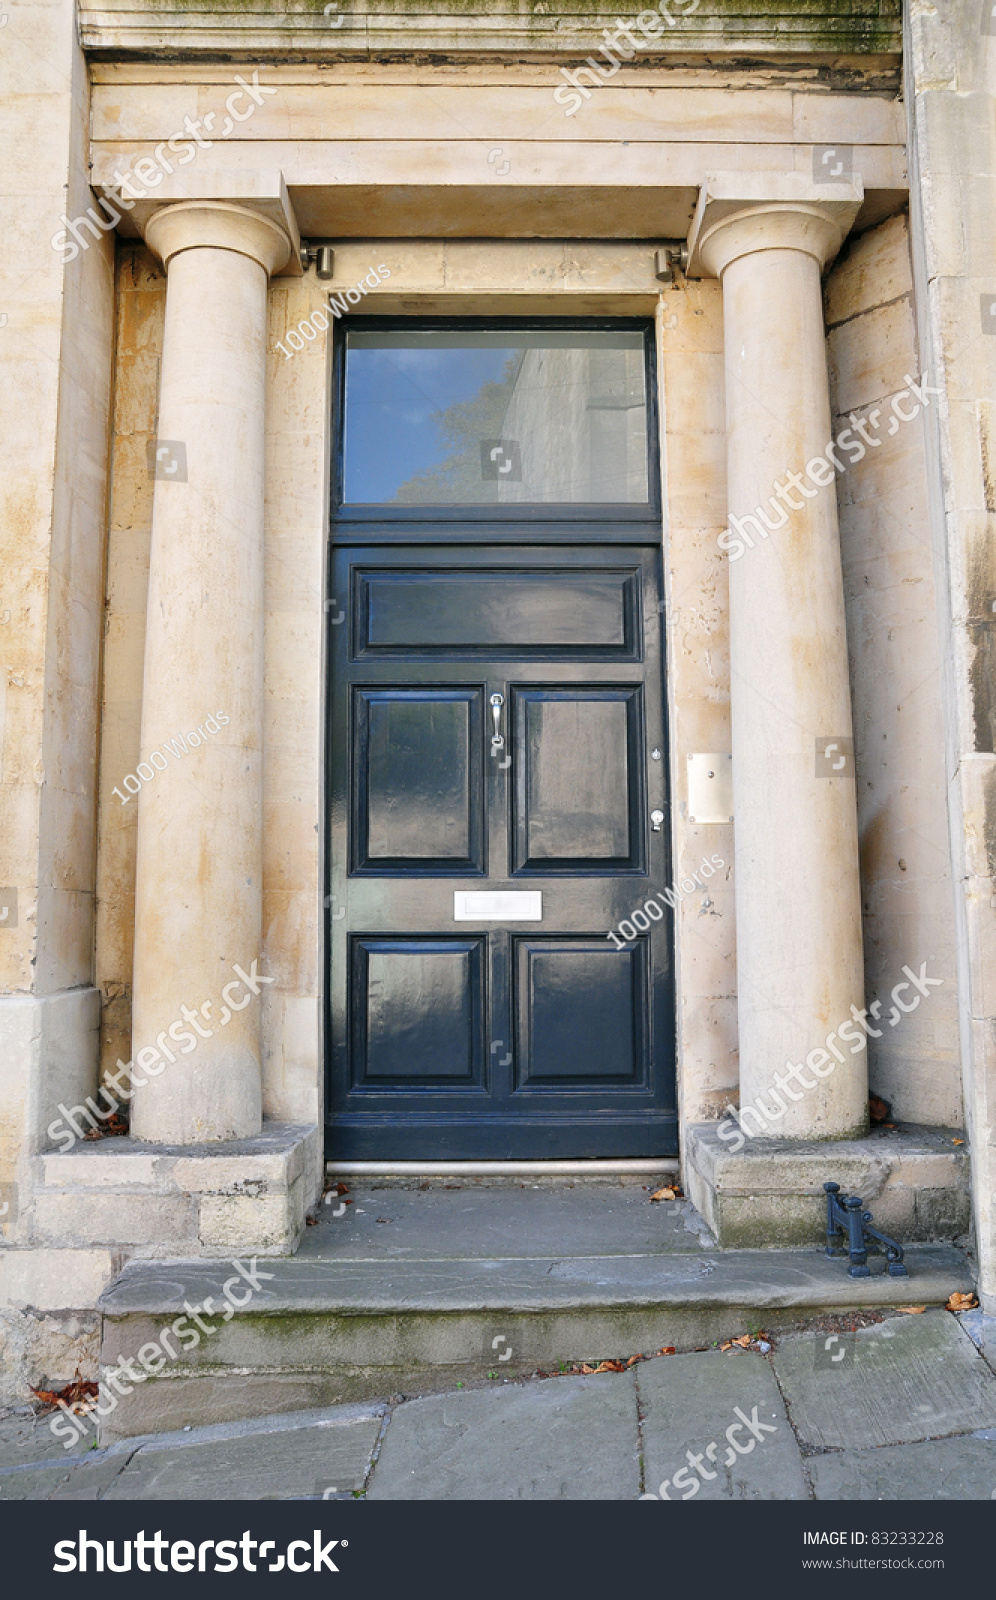 Front Door Doric Columns Georgian Era Stock Photo 83233228 - Shutterstock & Front Door Doric Columns Georgian Era Stock Photo 83233228 ...